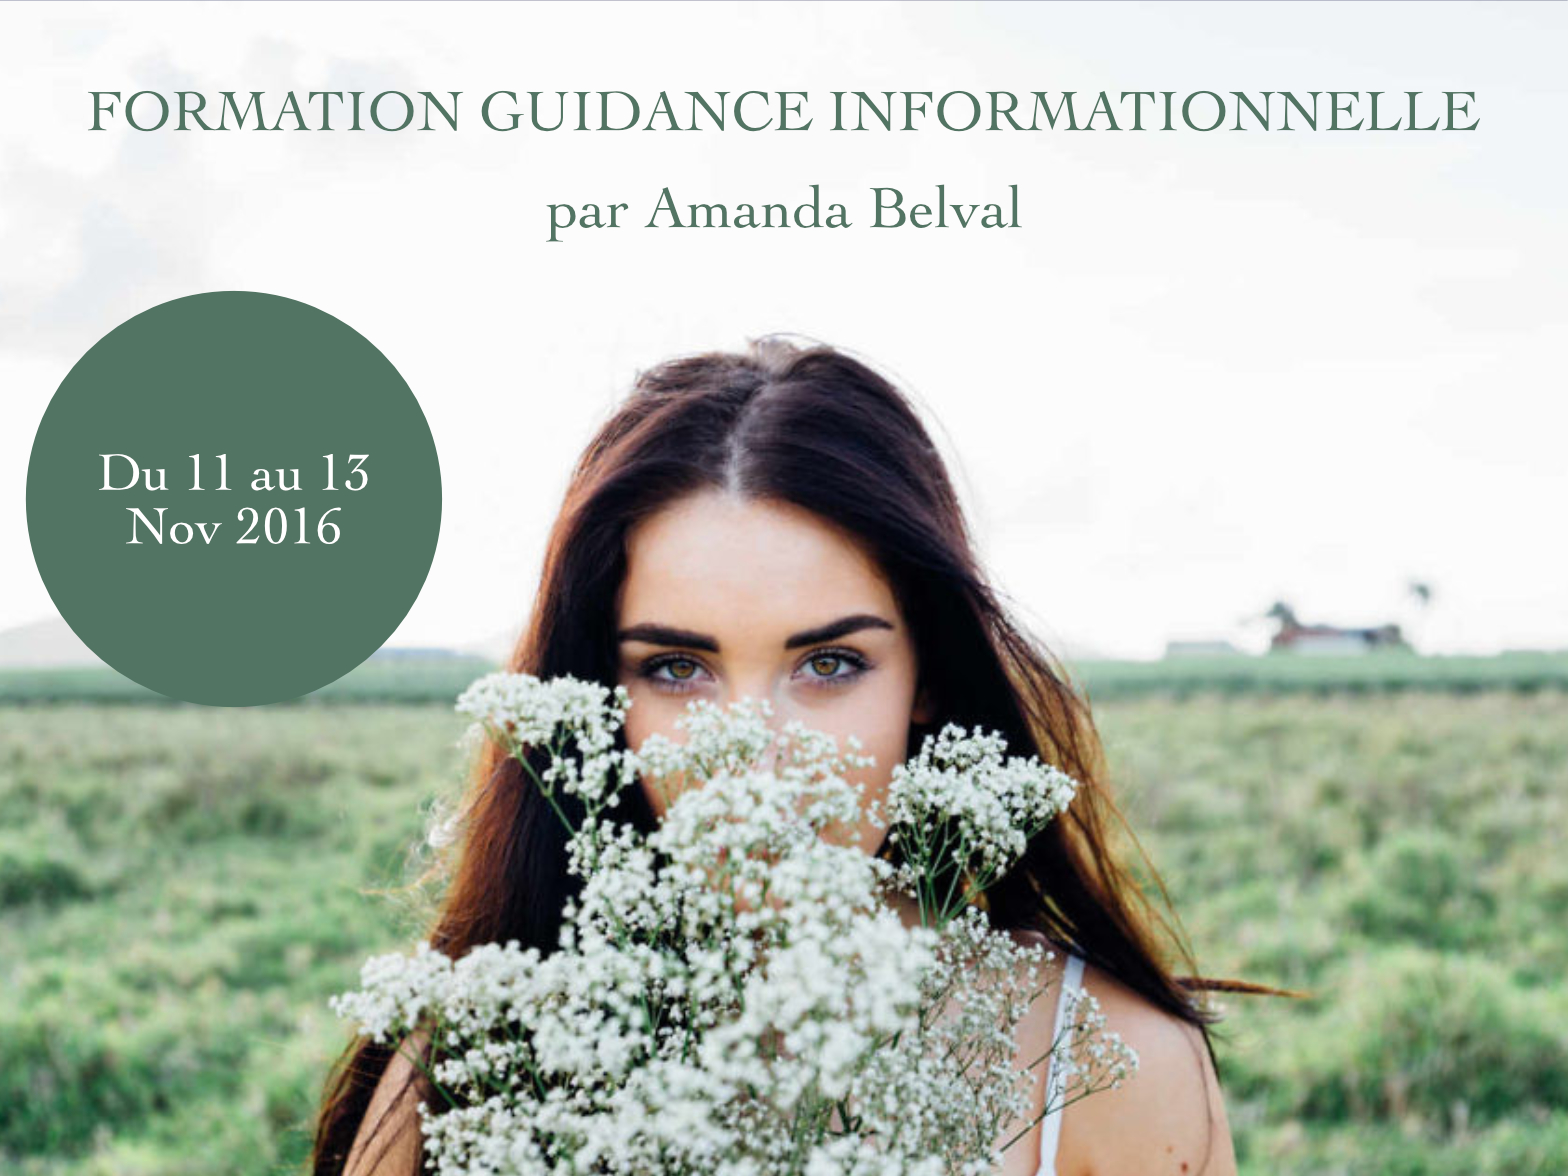 Formation guidance informationnelle - nov 2016 - Être Soi